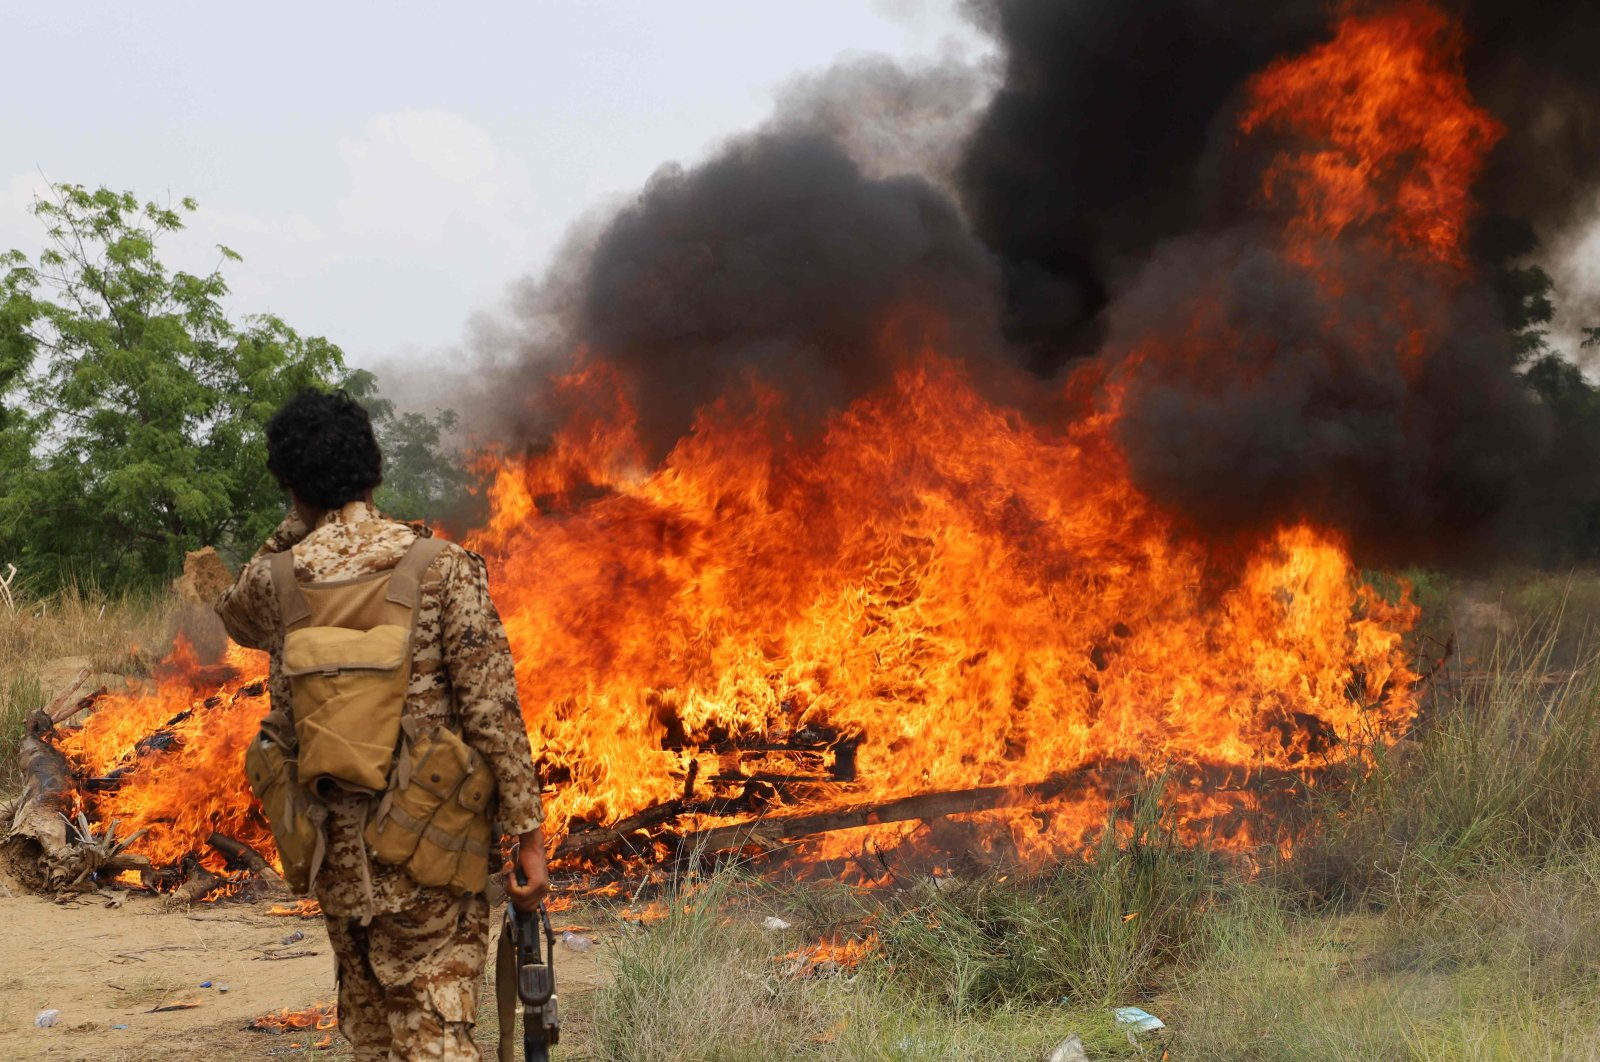 Security forces of the Saudi-backed and internationally recognized Yemeni government incinerate packages of what is reportedly believed to be narcotics seized from across various areas, in Yemen's northern Hajjah province near the border with Saudi Arabia on Oct. 5, 2021. (AFP Photo)